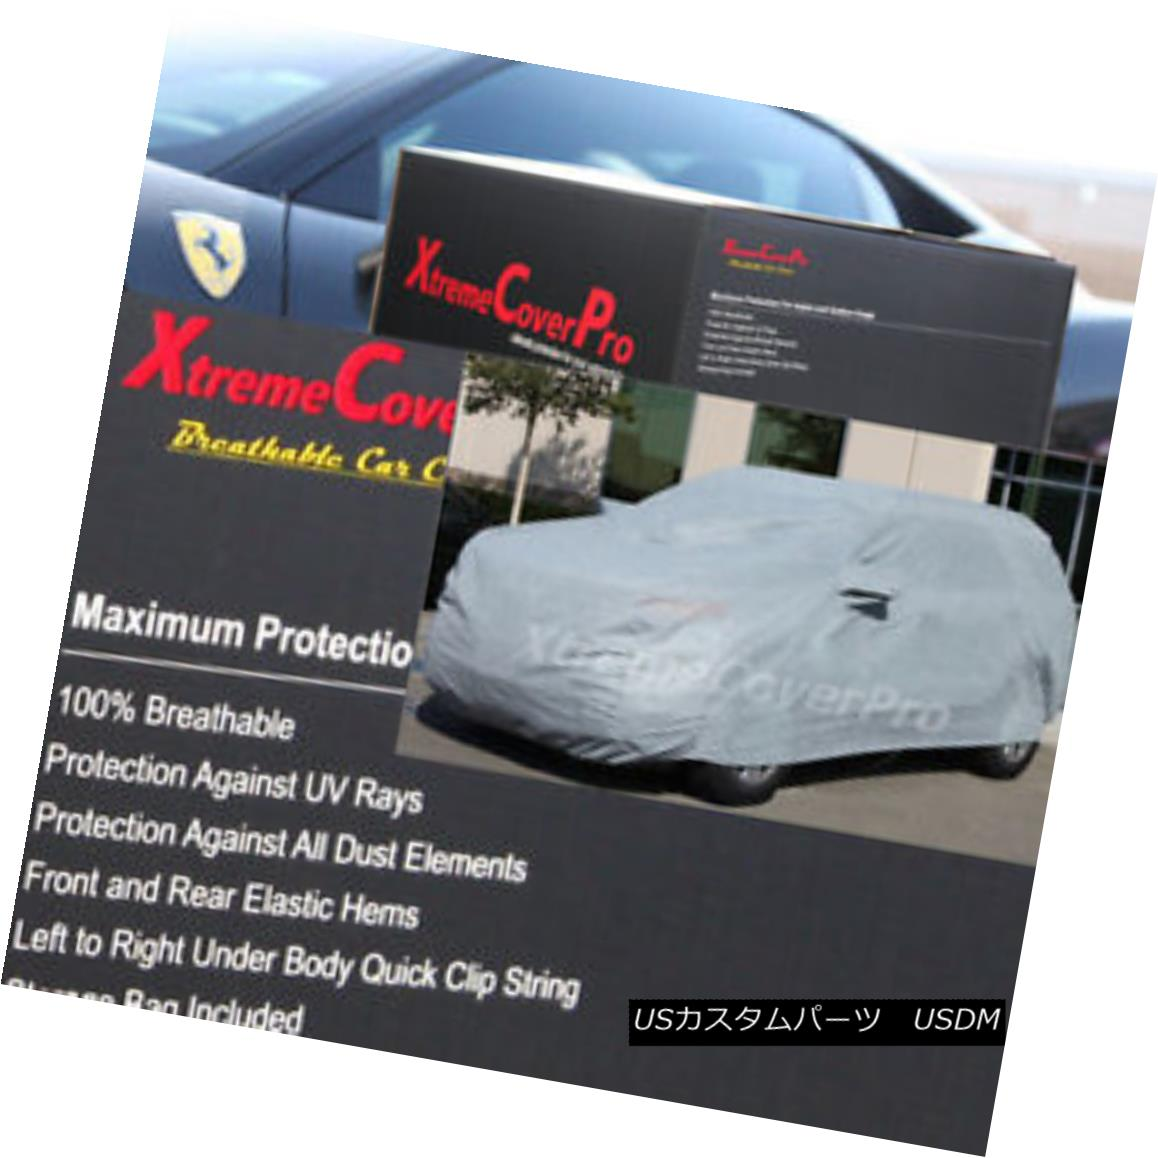 カーカバー 2018 LAND ROVER DISCOVERY SPORT BREATHABLE CAR COVER W/MIRROR POCKET-GREY 2018 LAND ROVERディスカバリースポーツブレイジャブルカーカバーWIRAL POCKET-GREY